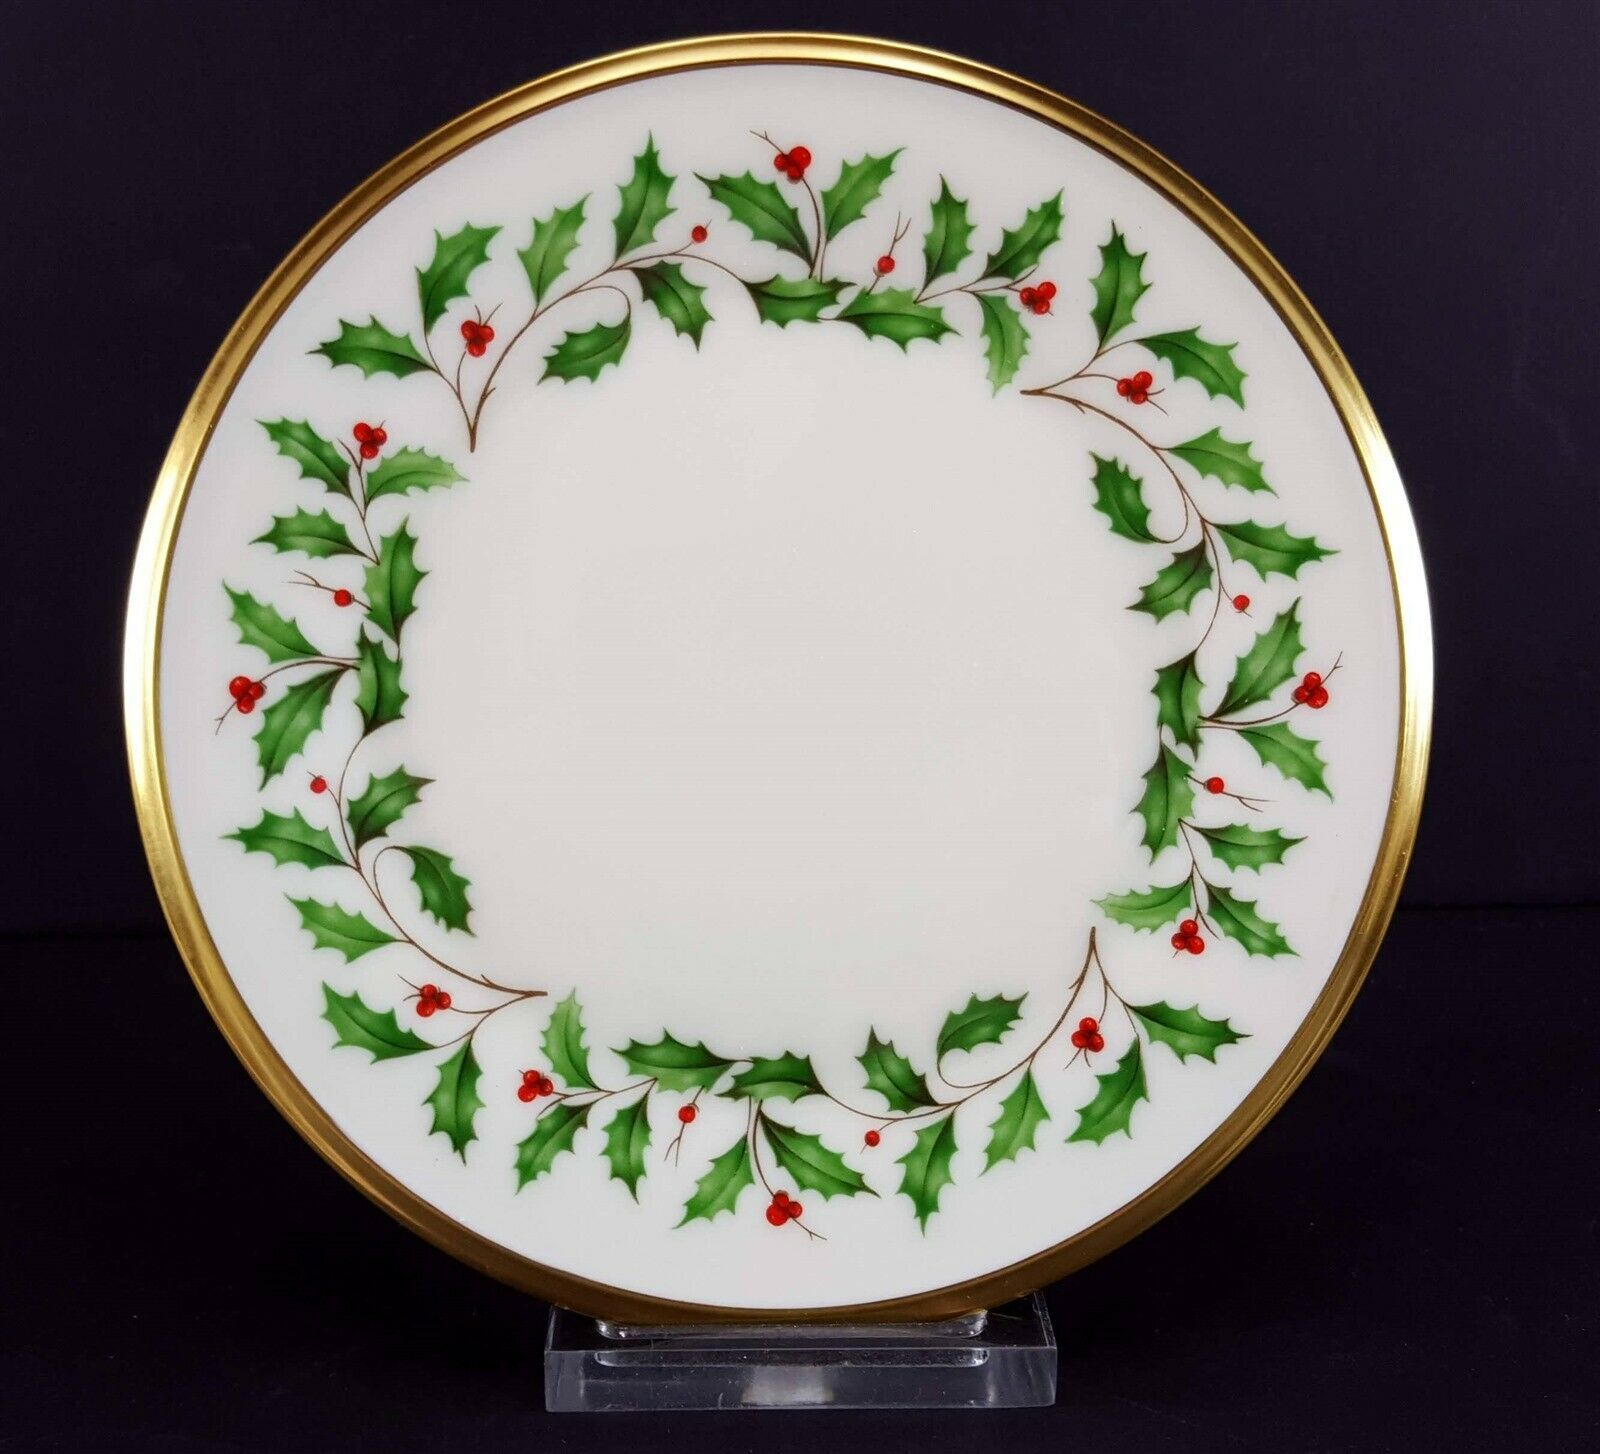 LENOX China Holiday Dimension 5 Piece Place Setting Dinnerware USA image 7